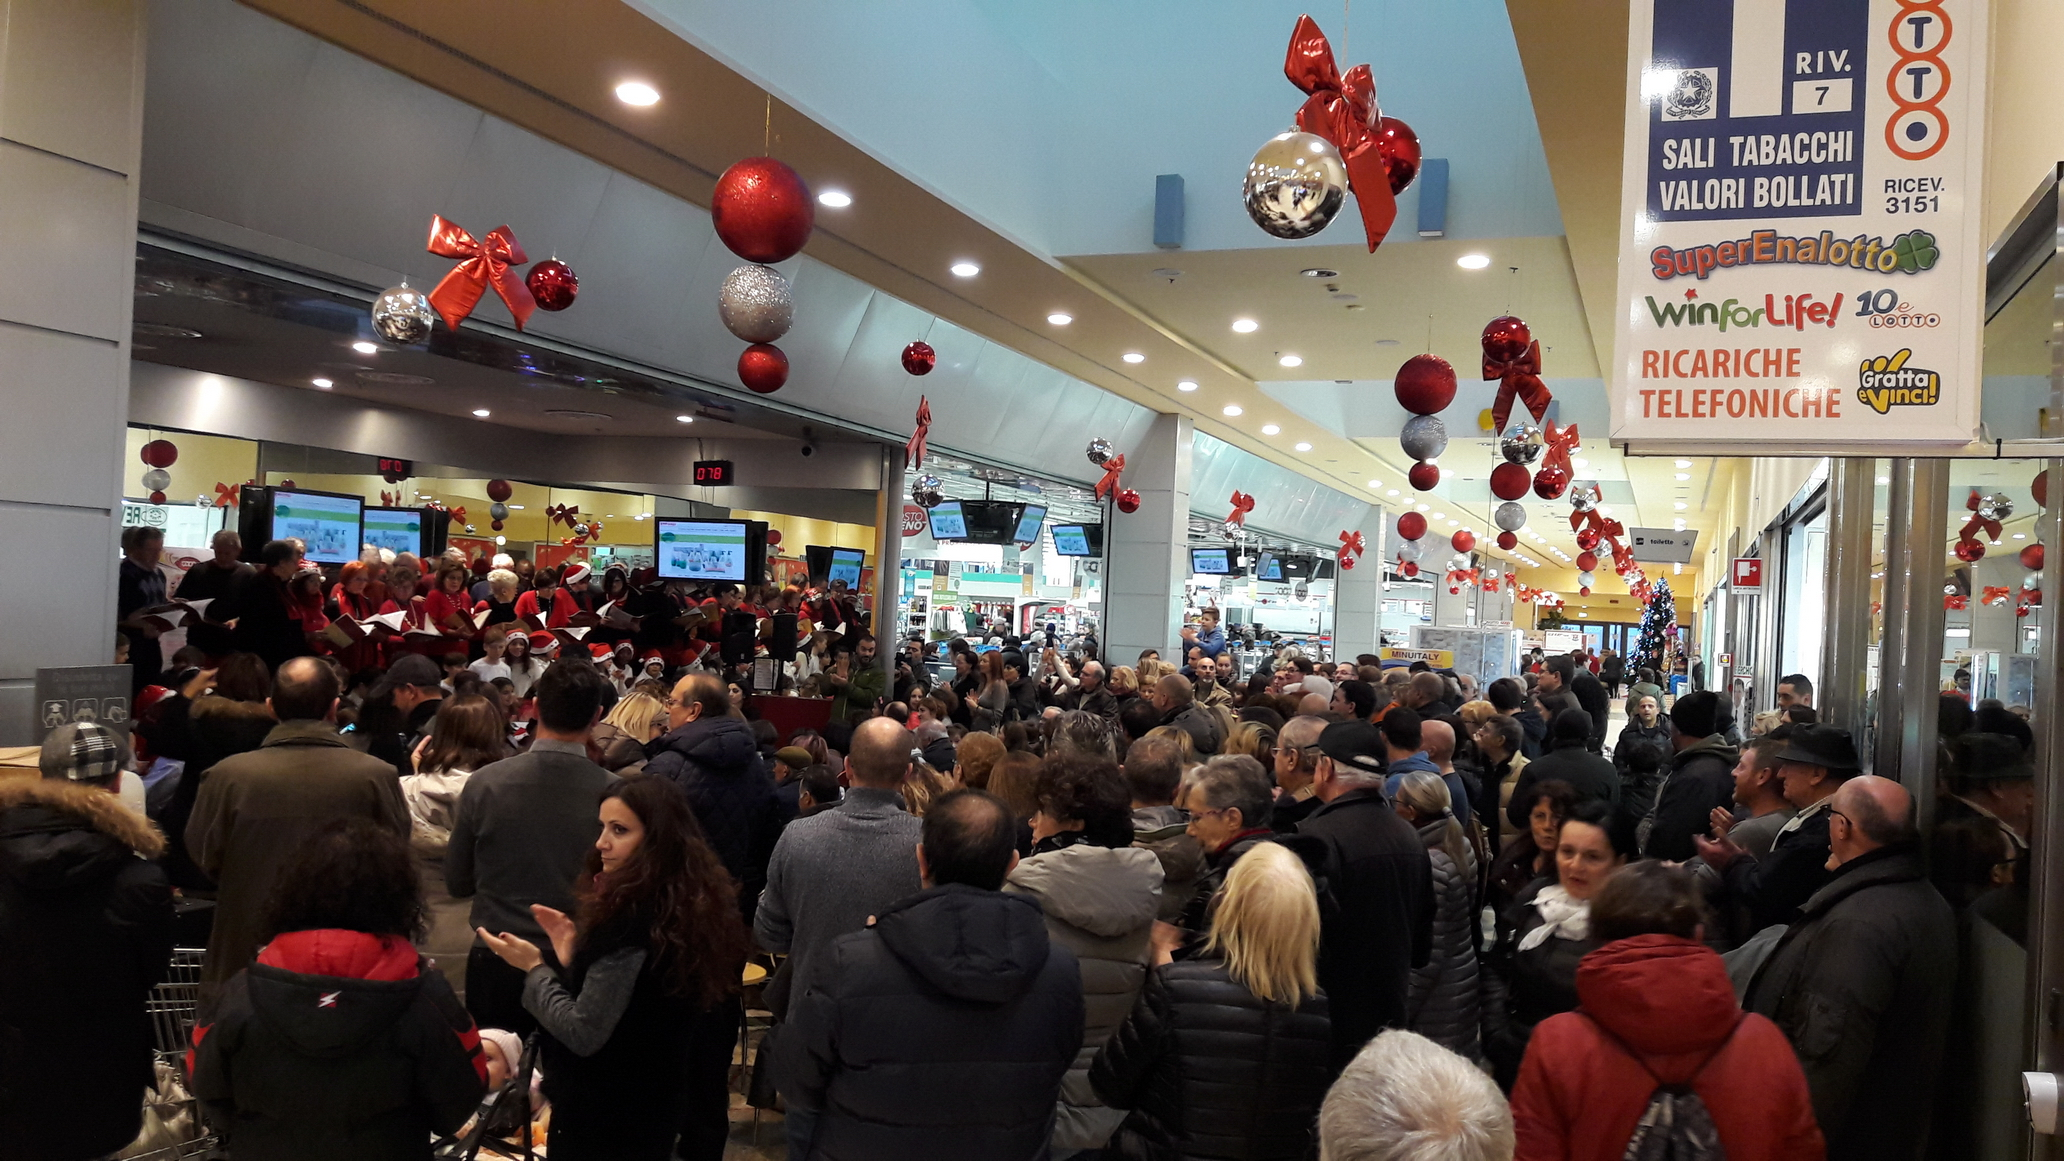 Centro Commerciale Il Gallo - Galliate: Gallerie fotografiche. Evento del 20161217